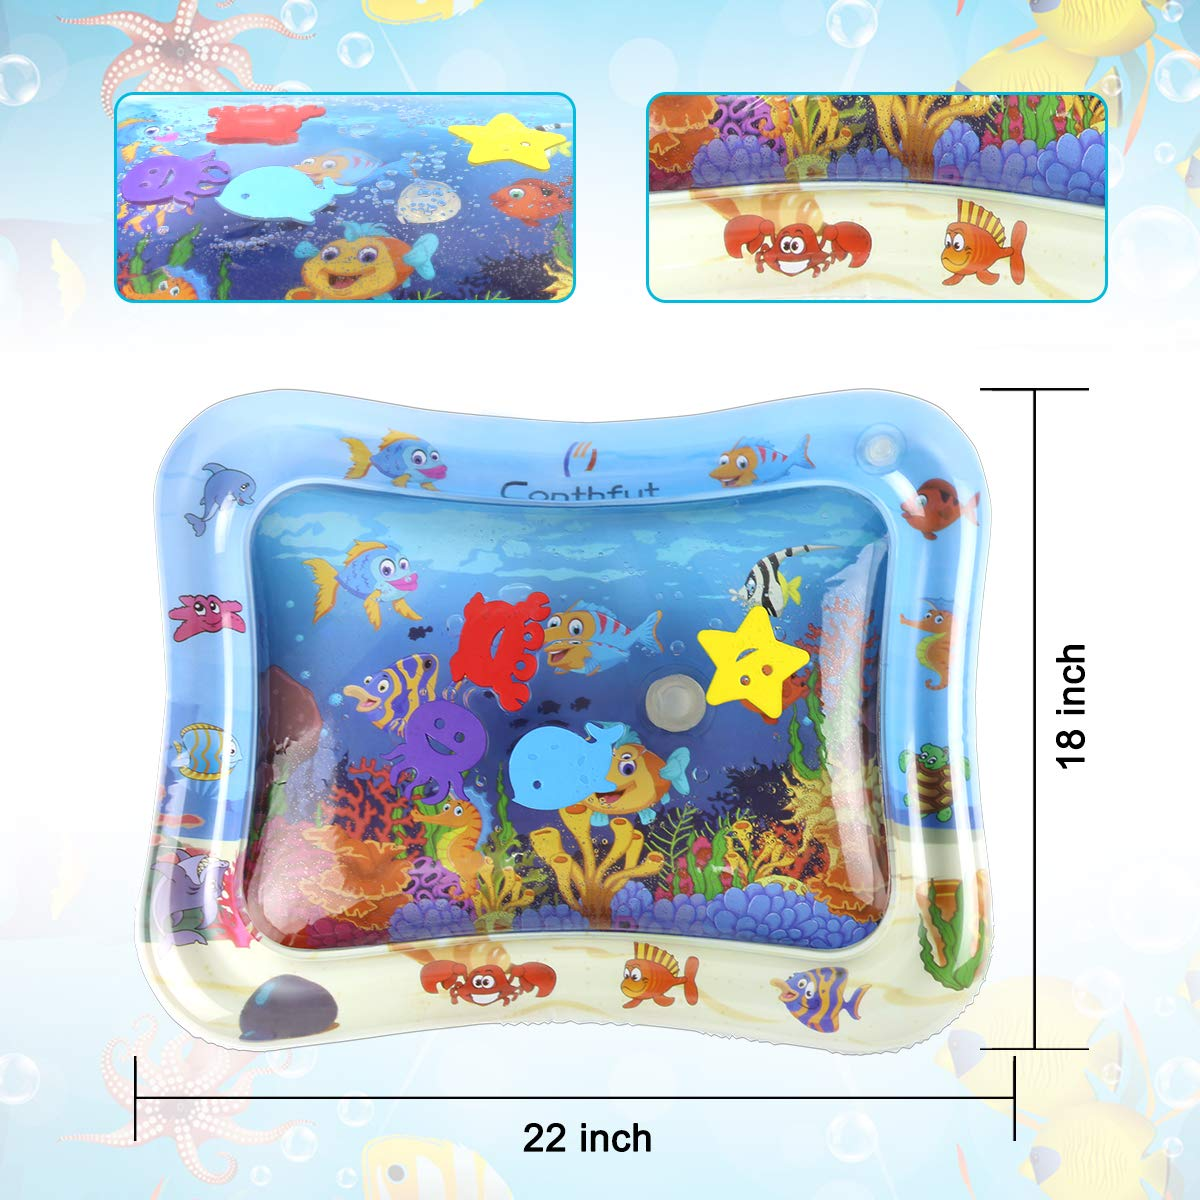 Conthfut Kids Inflatable Water mat 22x18in Fun Water mat Activity Center Leakproof PVC Water Filled Playmat for Newborns for Infants /& Toddlers